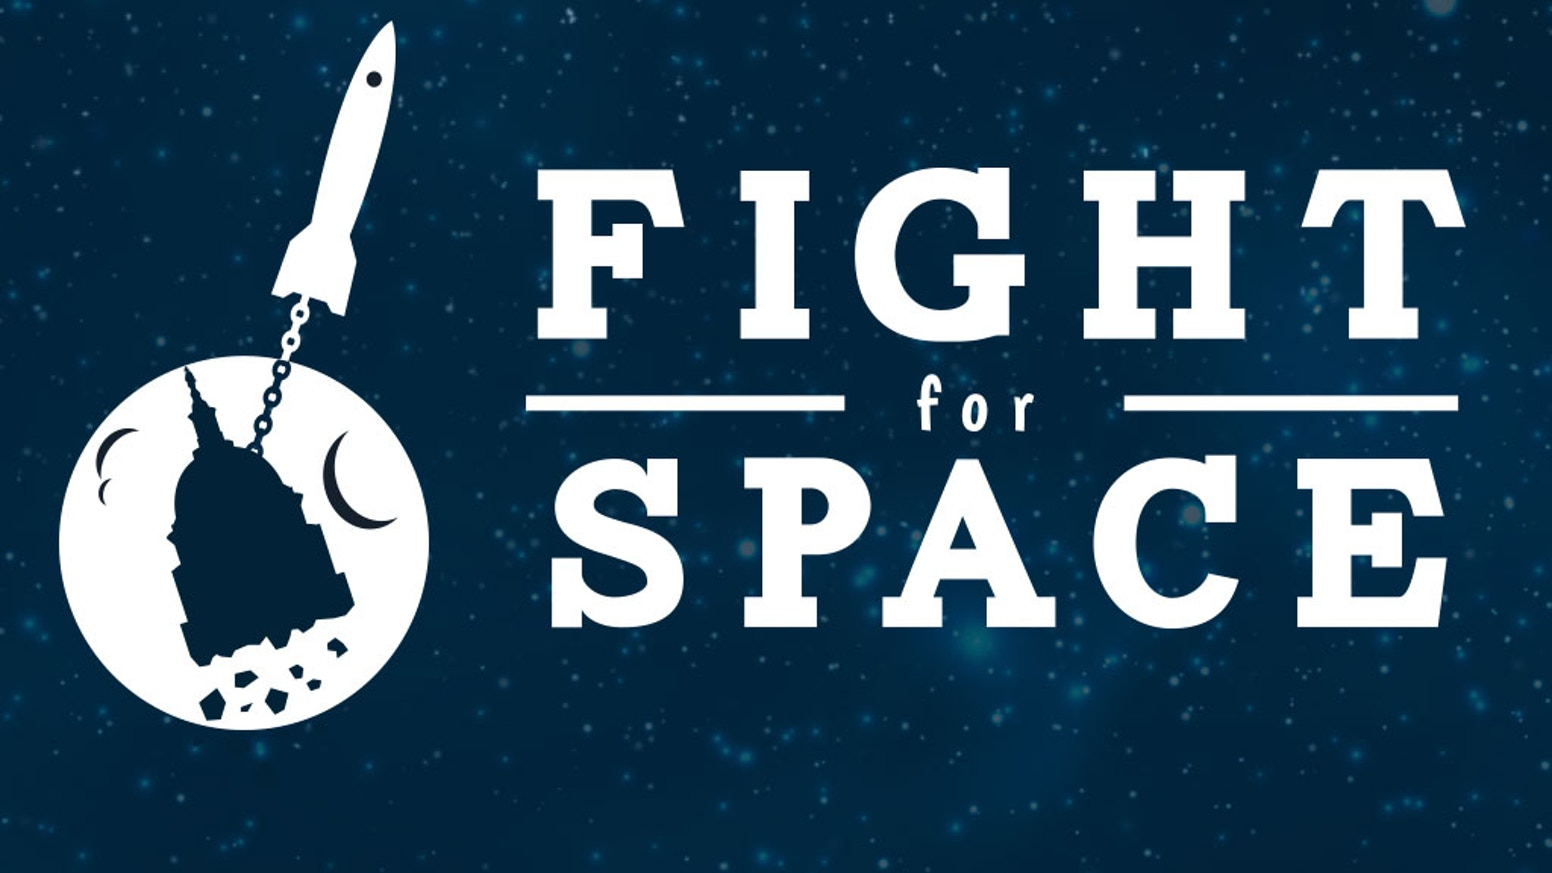 Fight for Space is a documentary film that explores the history of the US Space Program, the NASA budget, and the future.